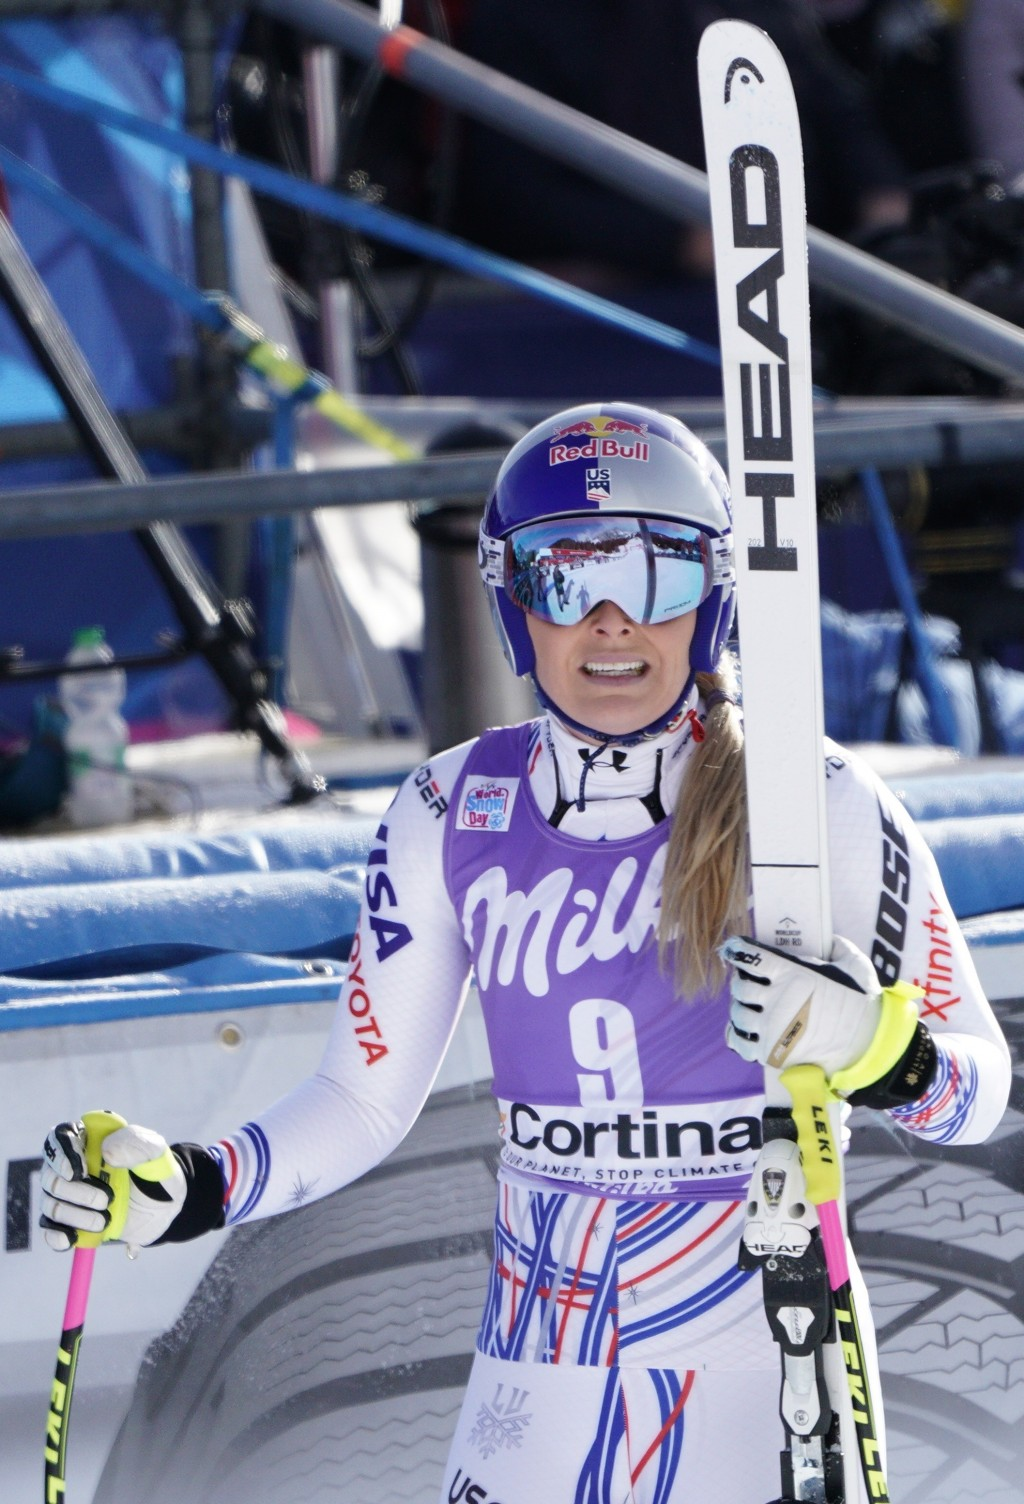 United States' Lindsey Vonn checks her time at the finish area of an alpine ski, women's World Cup downhill in Cortina D'Ampezzo, Italy, Saturday, Jan